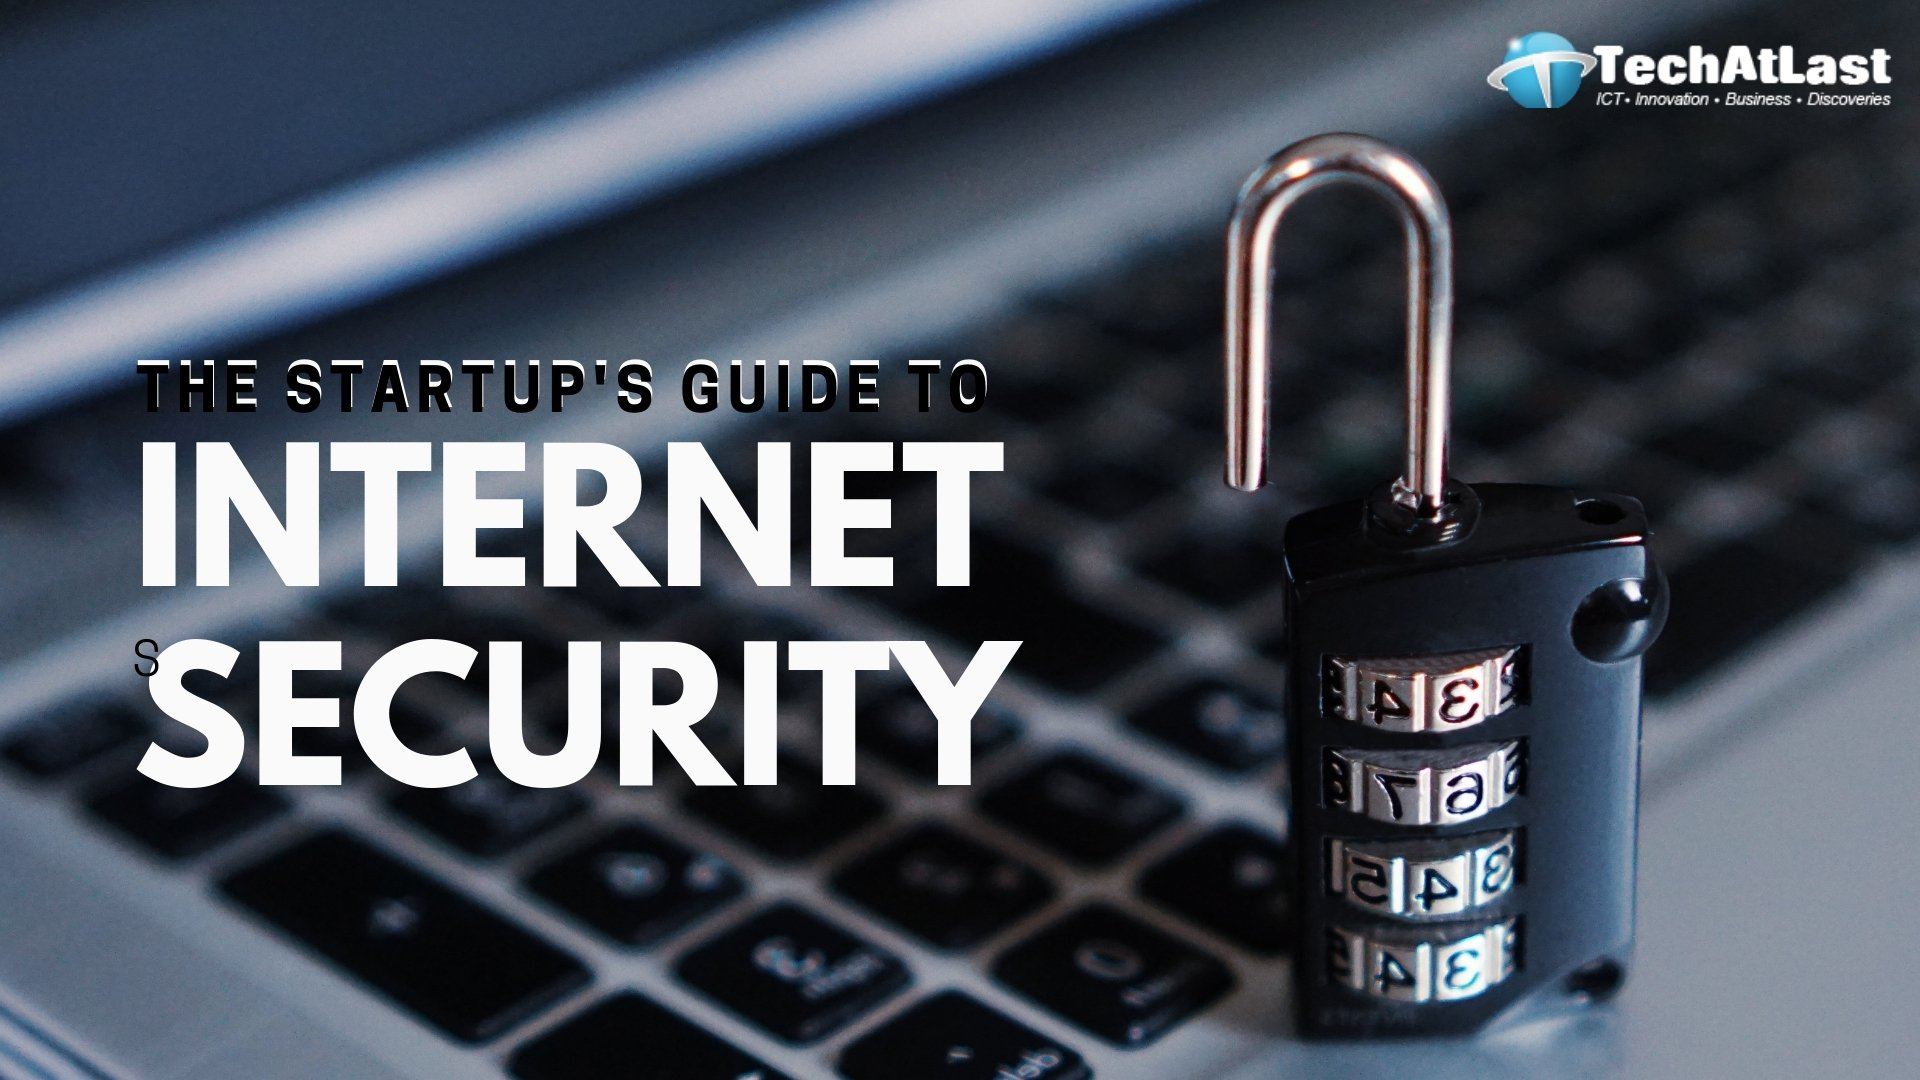 The Startup's Guide to Internet Security